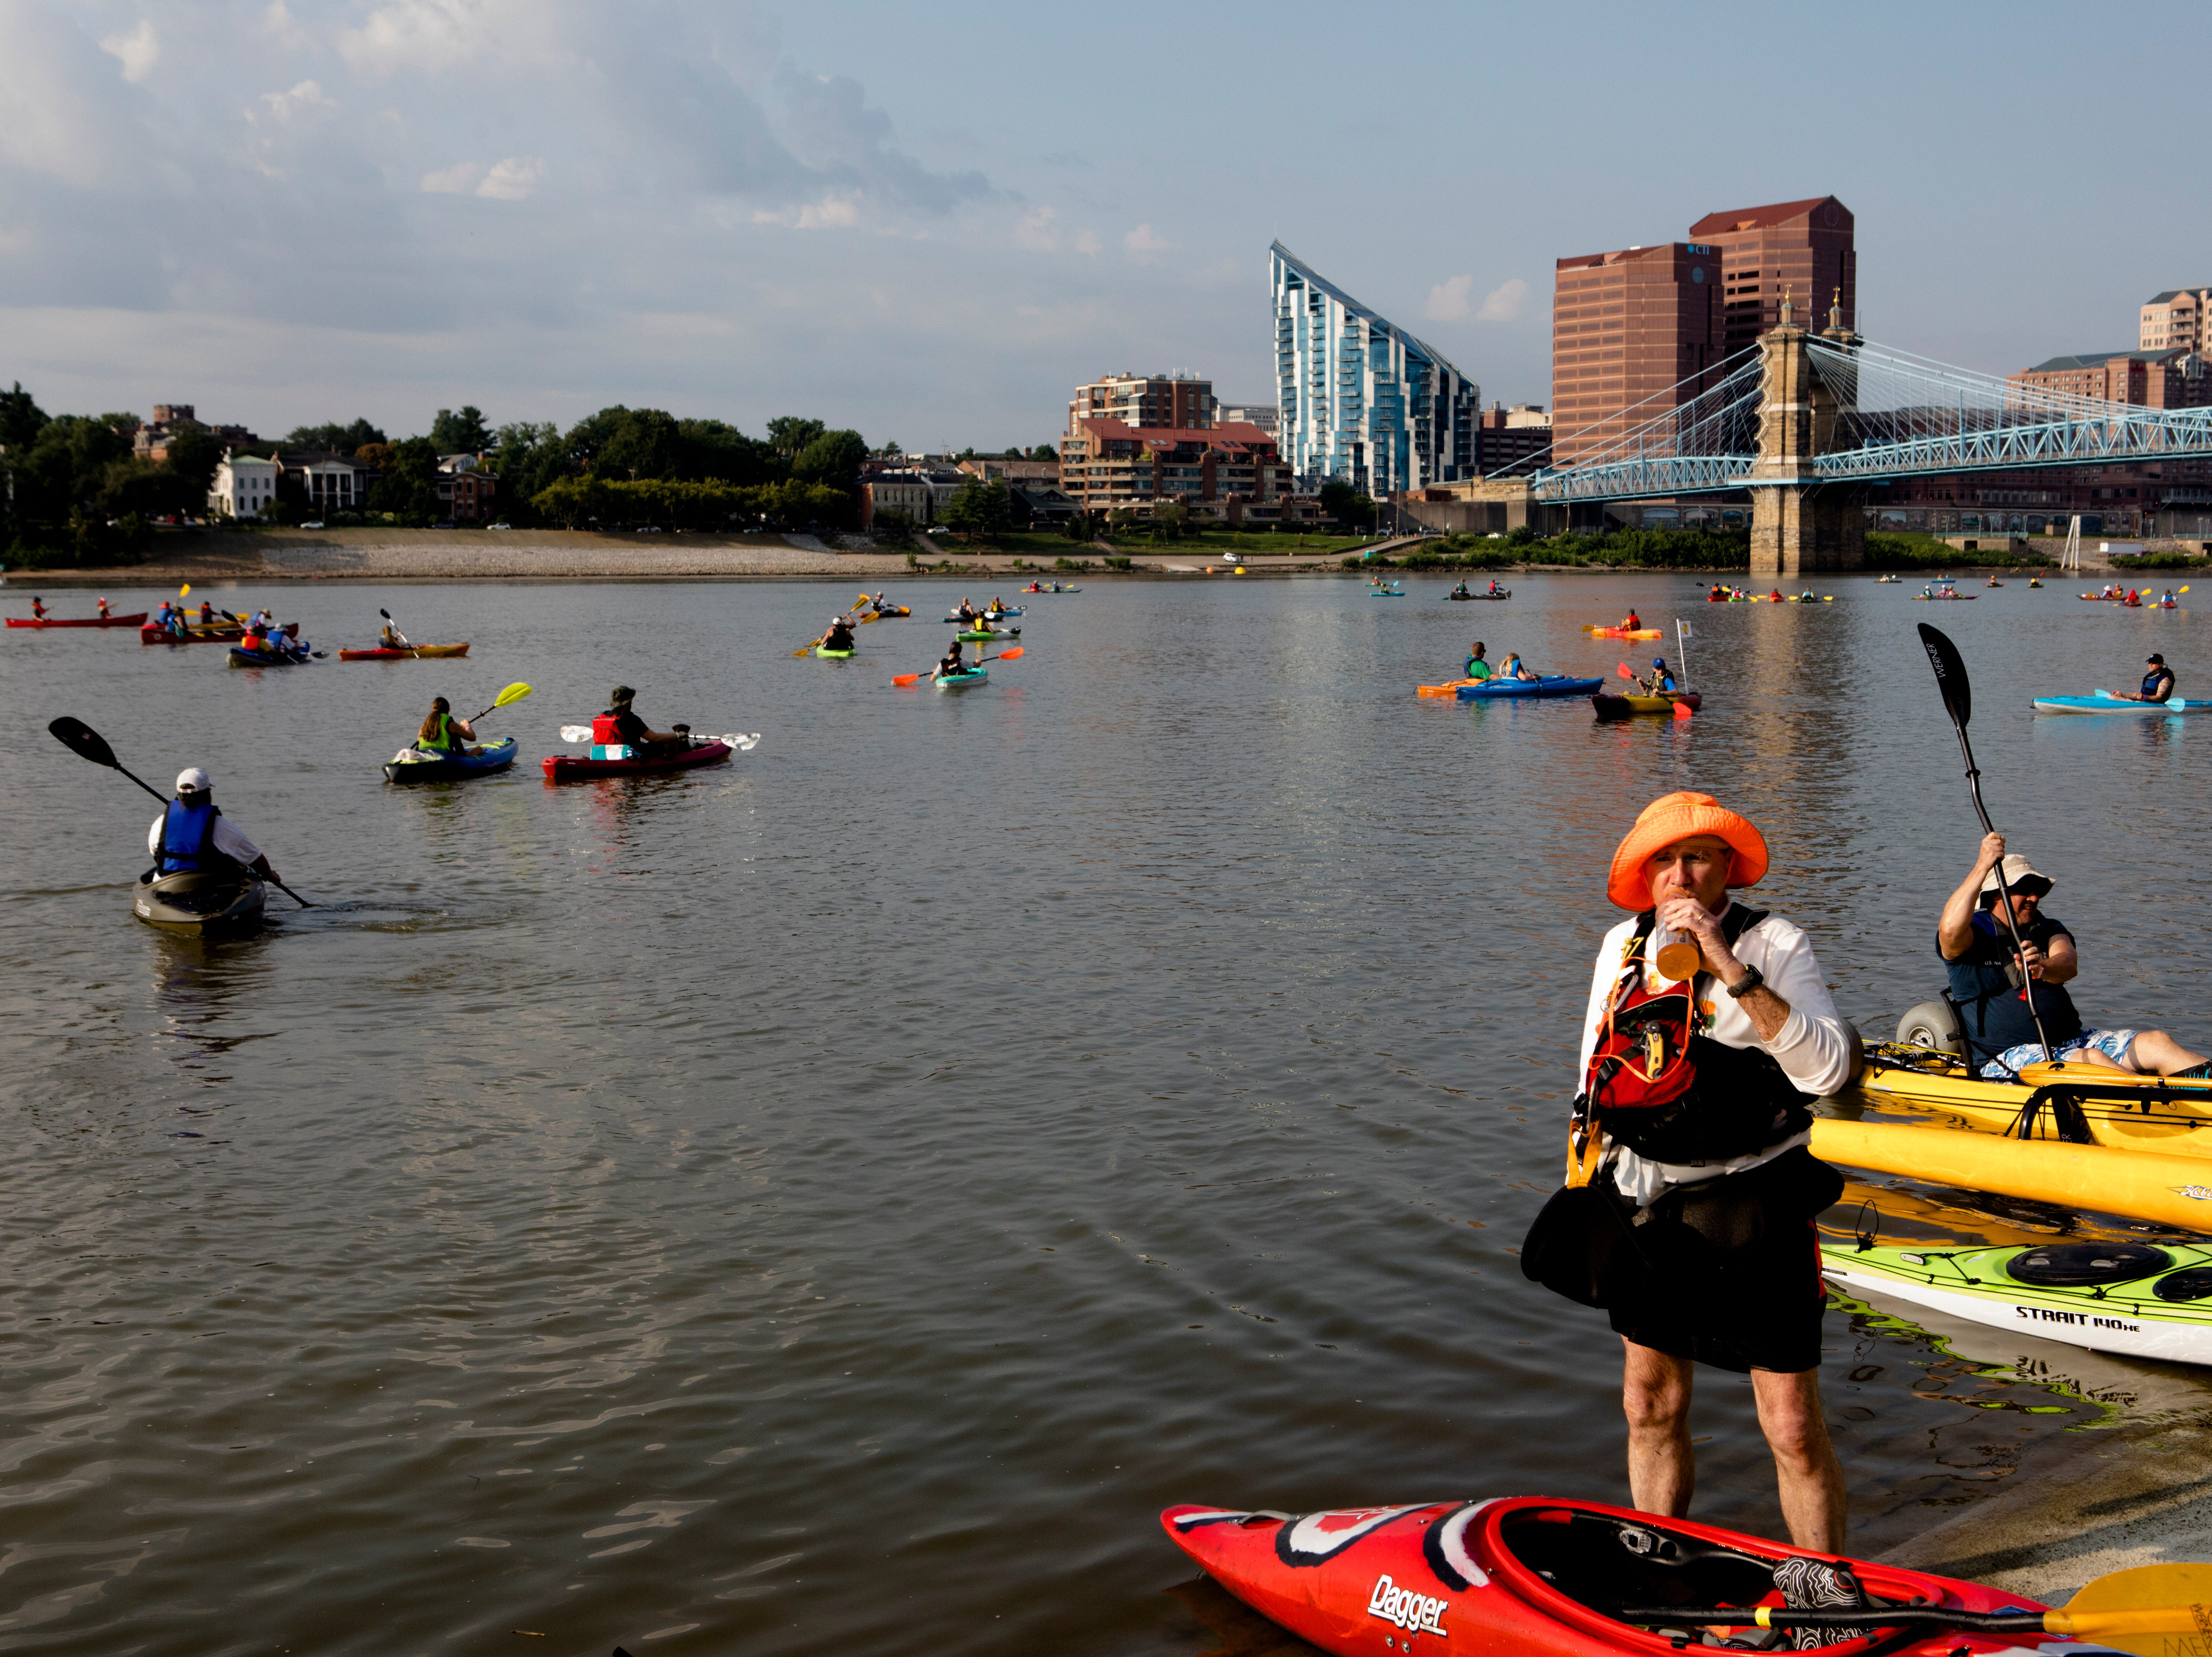 Tim Kling takes a drink of gatorade during the 17th annual Ohio River Paddlefest in Cincinnati on Saturday, Aug. 4, 2018.  According to organizers about 2000 people participated in the event which Outdoor Adventure Clubs of Greater Cincinnati raised almost $100,000.